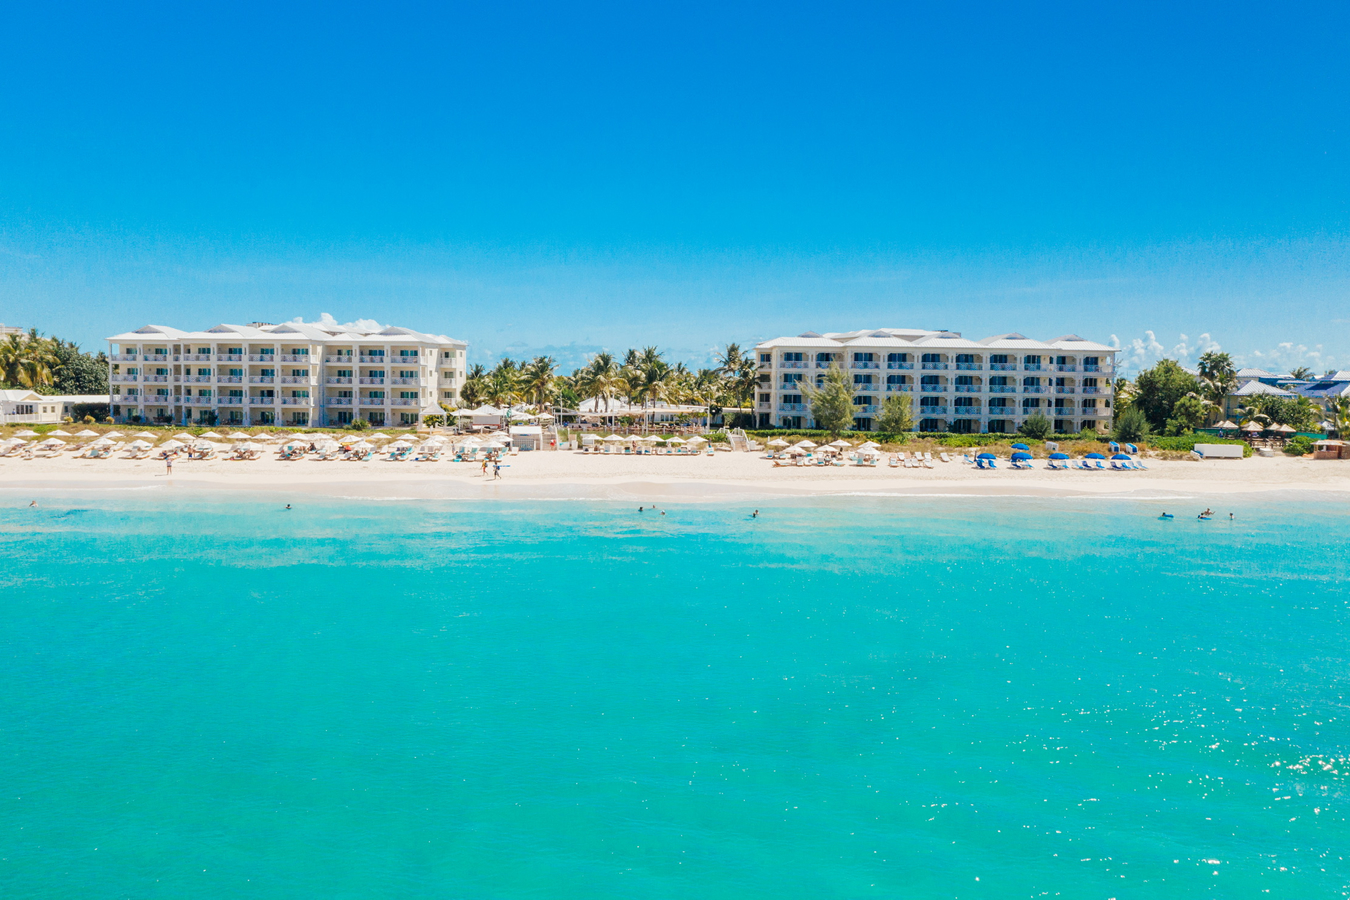 The Alexandra Resort's 50 percent discount offer - valid for stays until December 22nd - is intended to attract visitors to its all-inclusive resort on the famous Grace Bay Beach in Turks & Caicos.